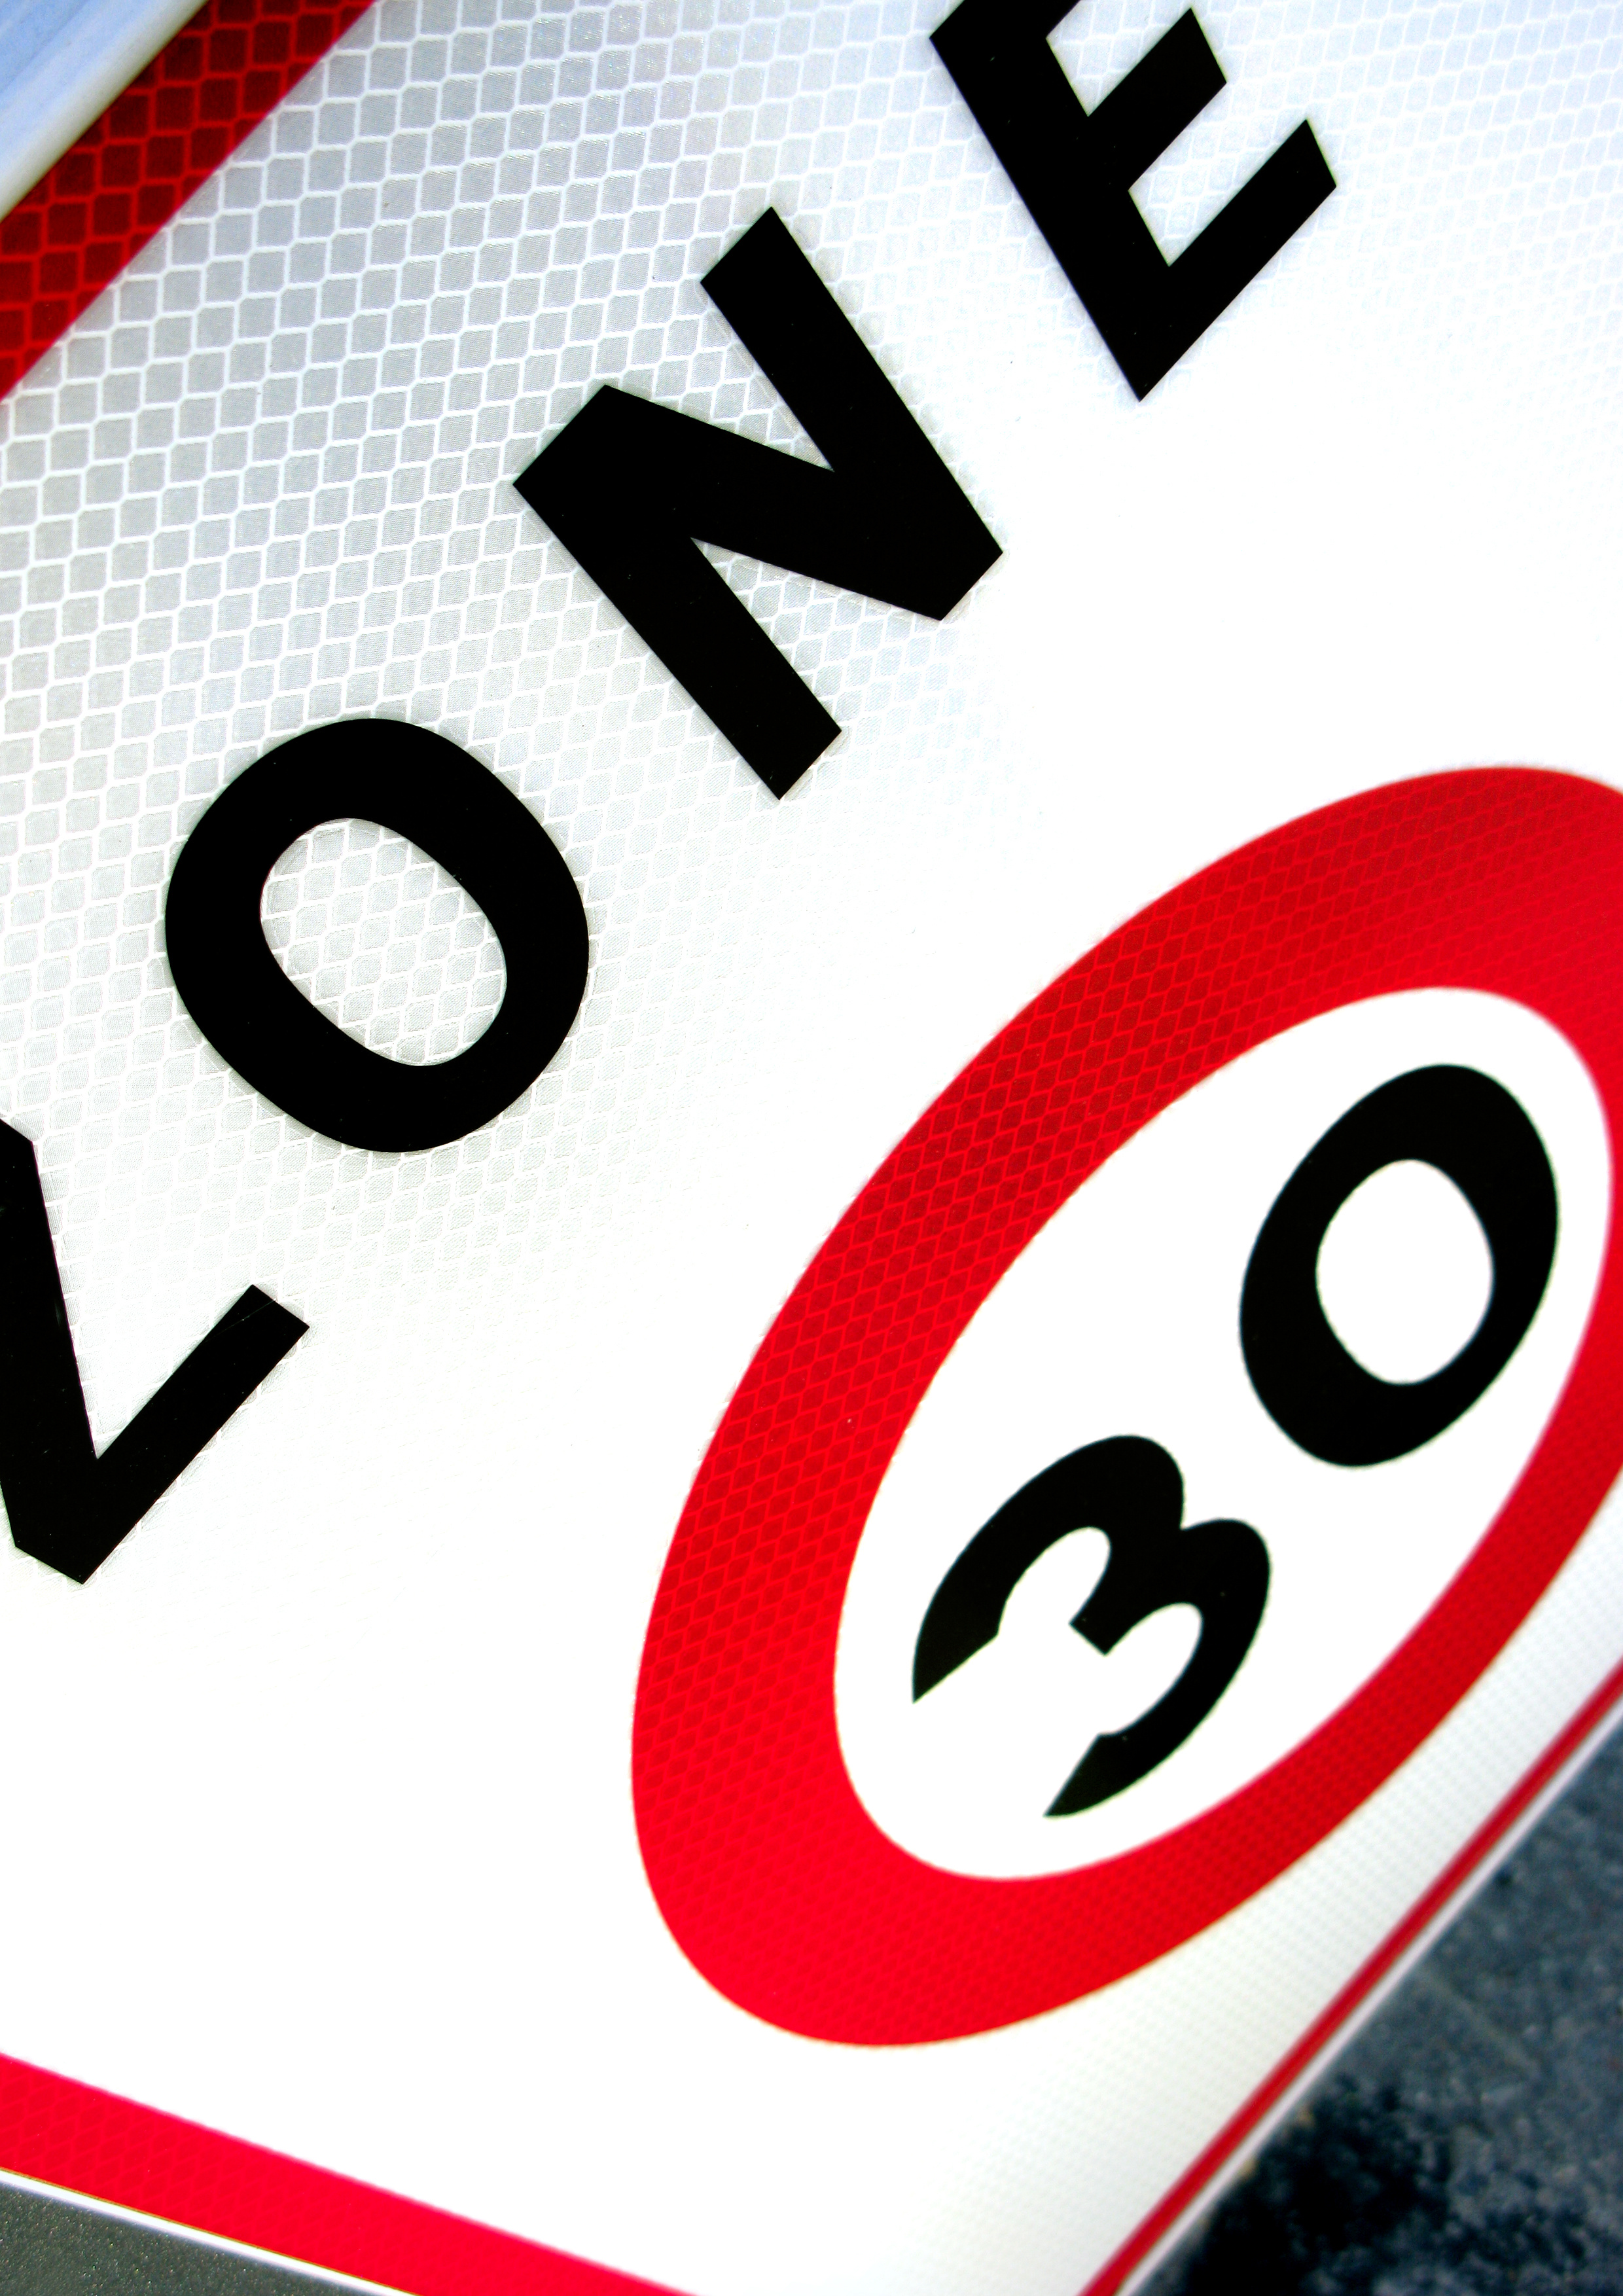 30 km/hour zone sign